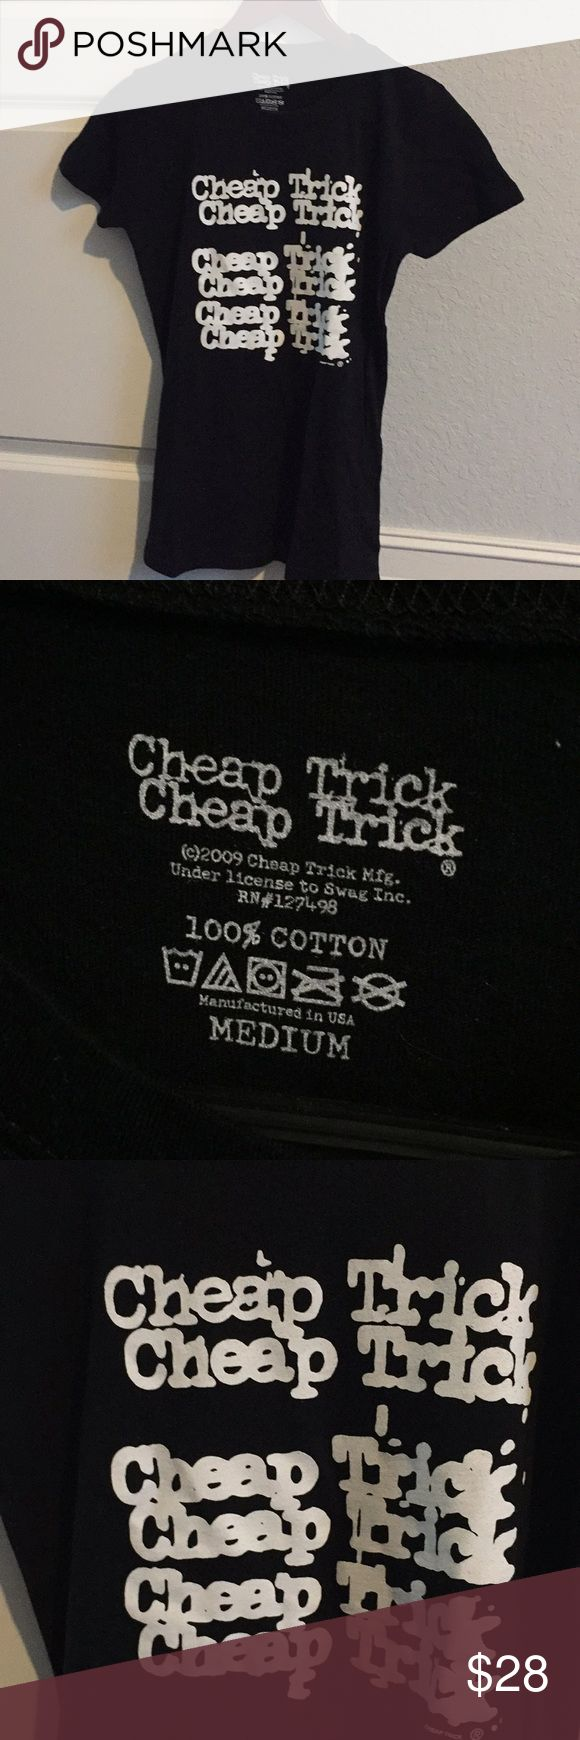 2009 Cheap Trick Concert T-shirt EUC - bought at their Tampa performance - ladies slim fit Tops Tees - Short Sleeve